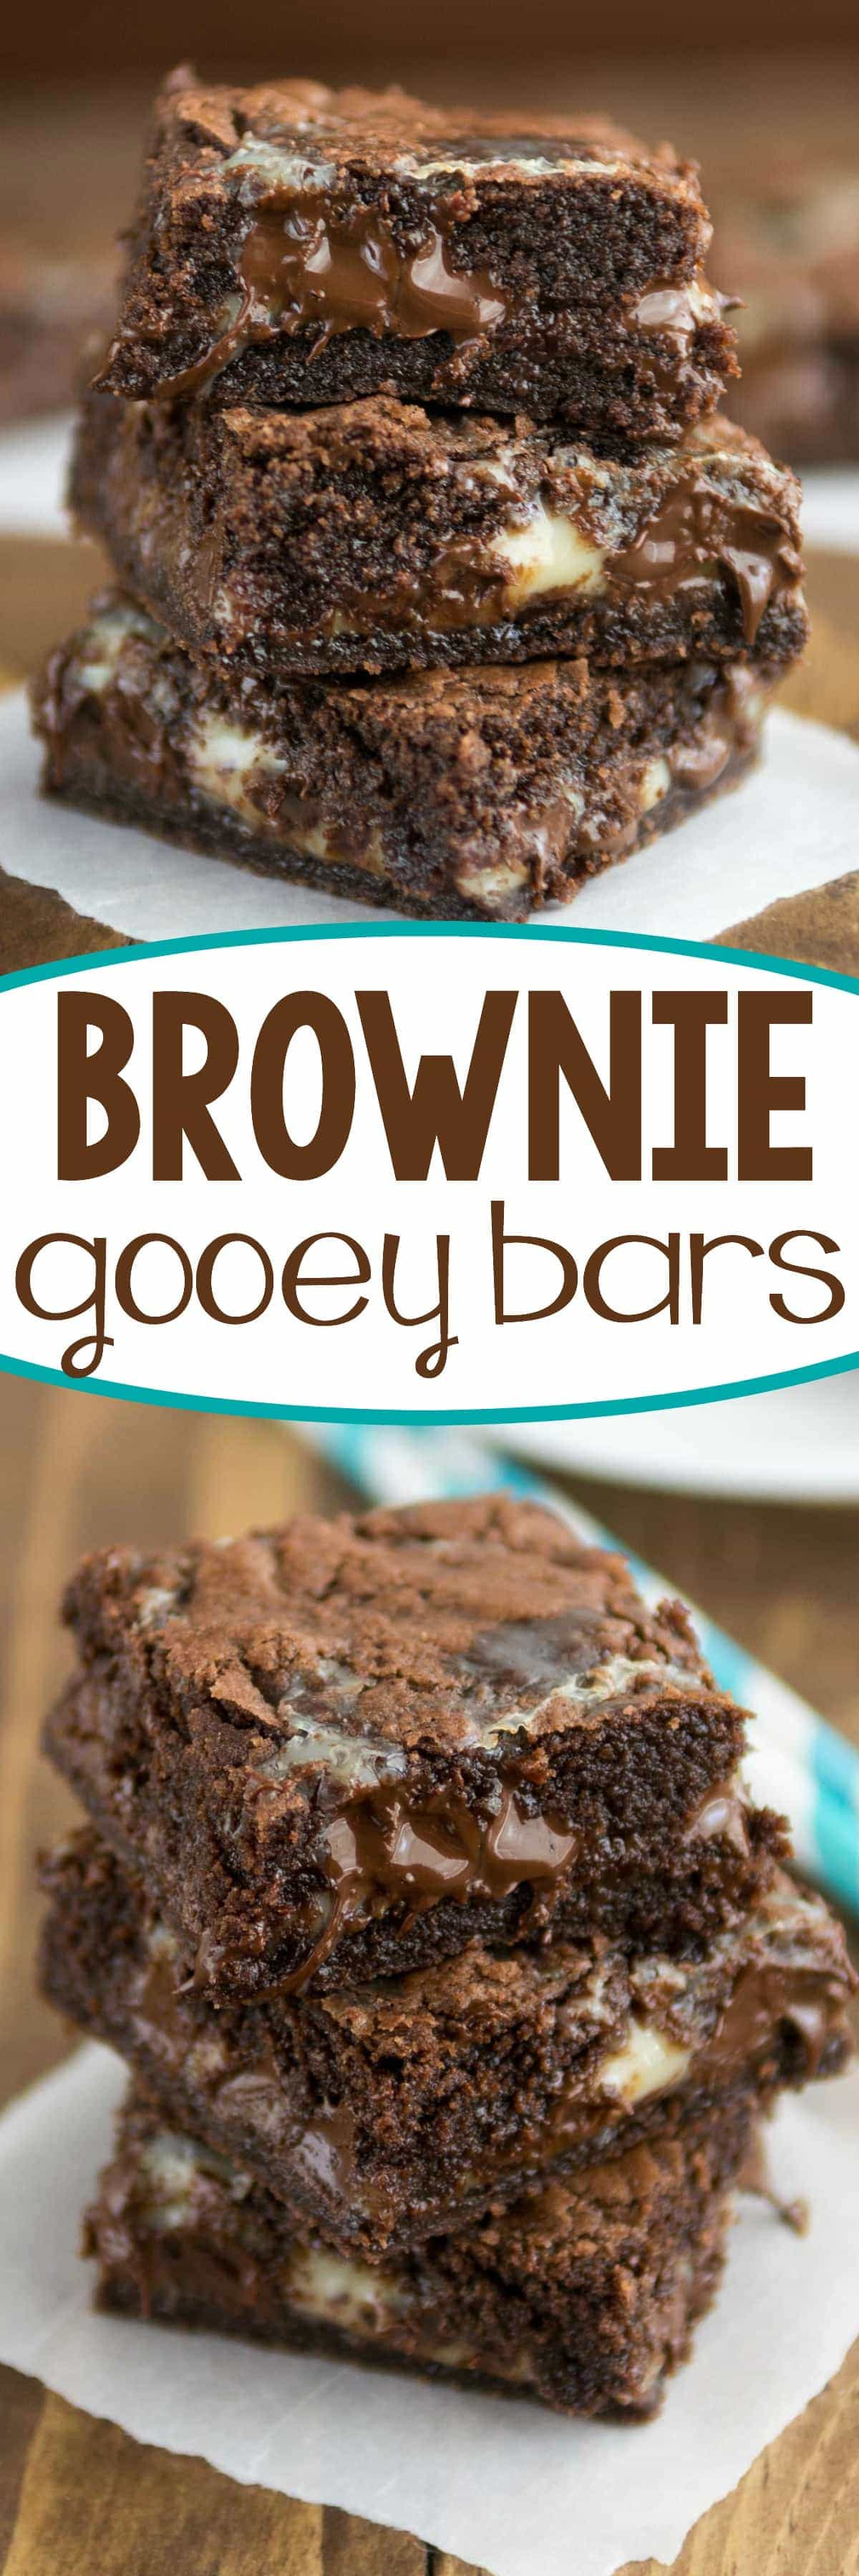 Easy Brownie Gooey Bars collage